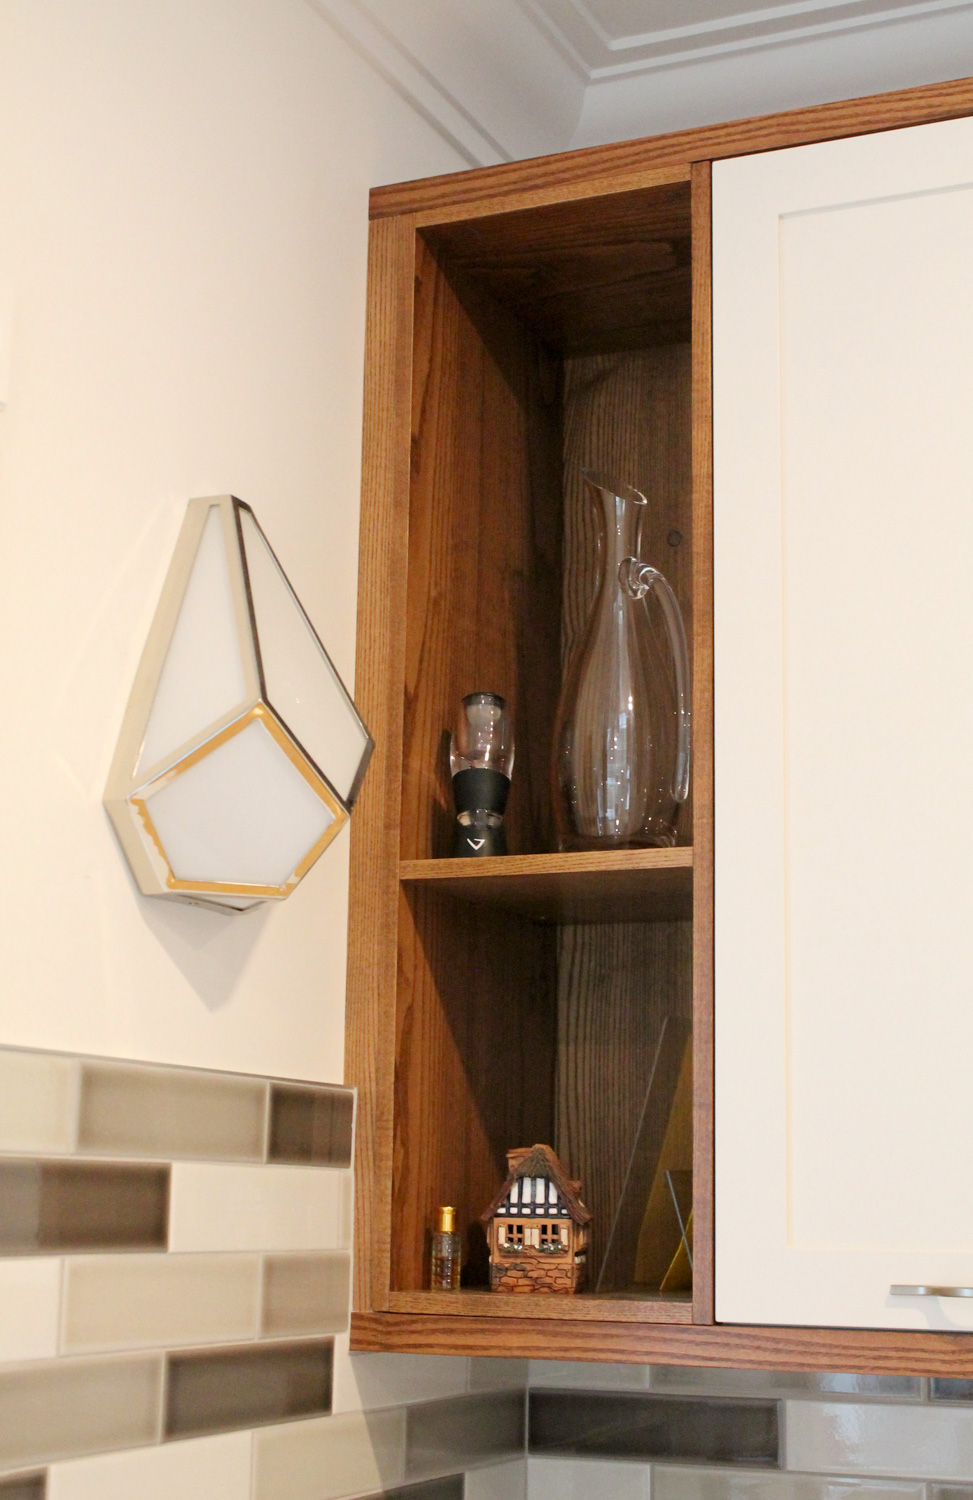 Corner cabinet detail with wall sconce